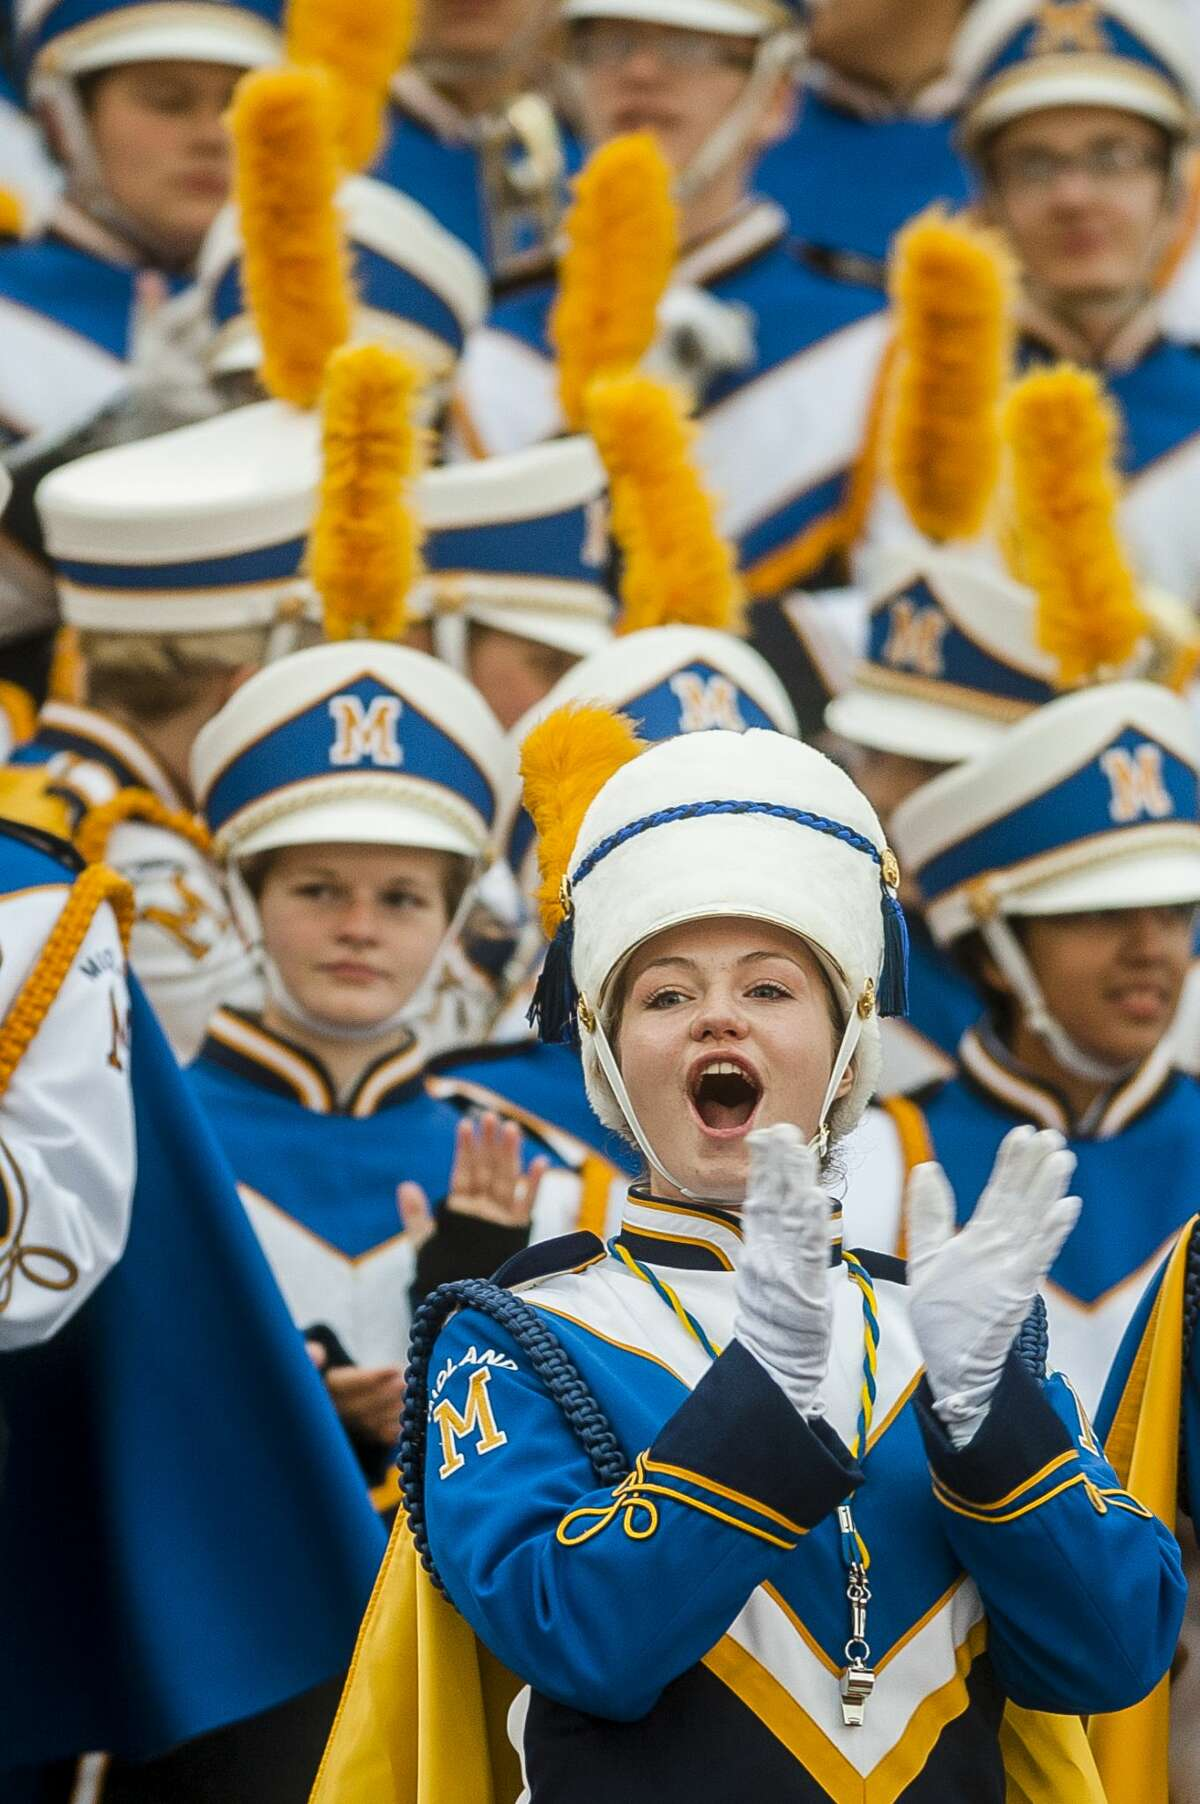 Members of the Midland High School marching band applaud another band during the 2017 Midland Marching Band Showcase on Wednesday, Oct. 11, 2017 at Midland Community Stadium. (Katy Kildee/kkildee@mdn.net)